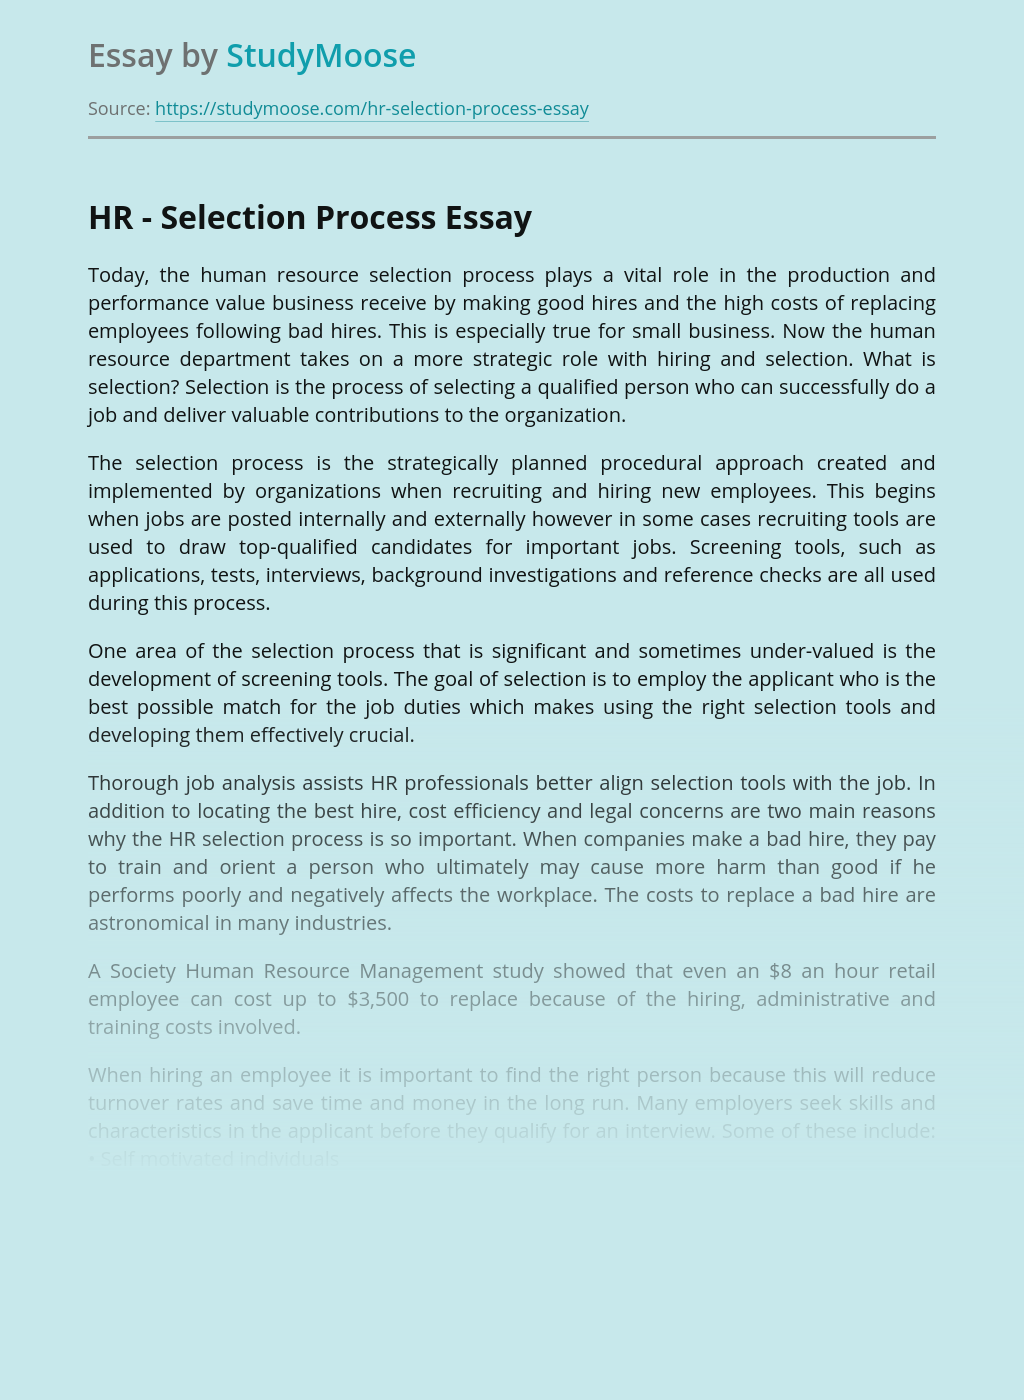 Selection Process in Human Resources Management